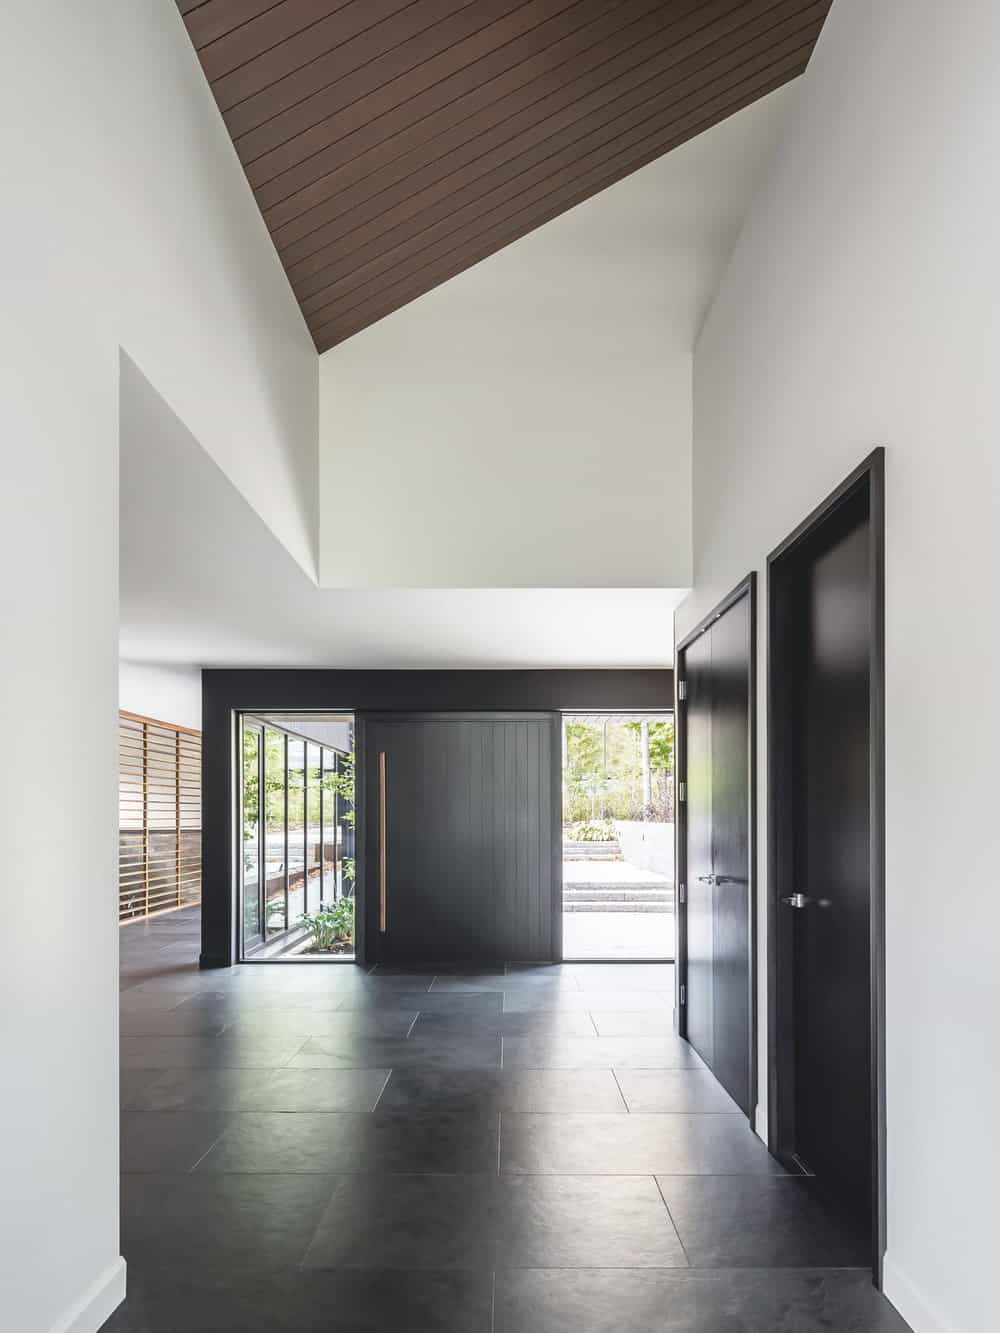 Upon entry of the house, you are welcomed by this foyer that has a large dark wooden main door and high arched ceiling.